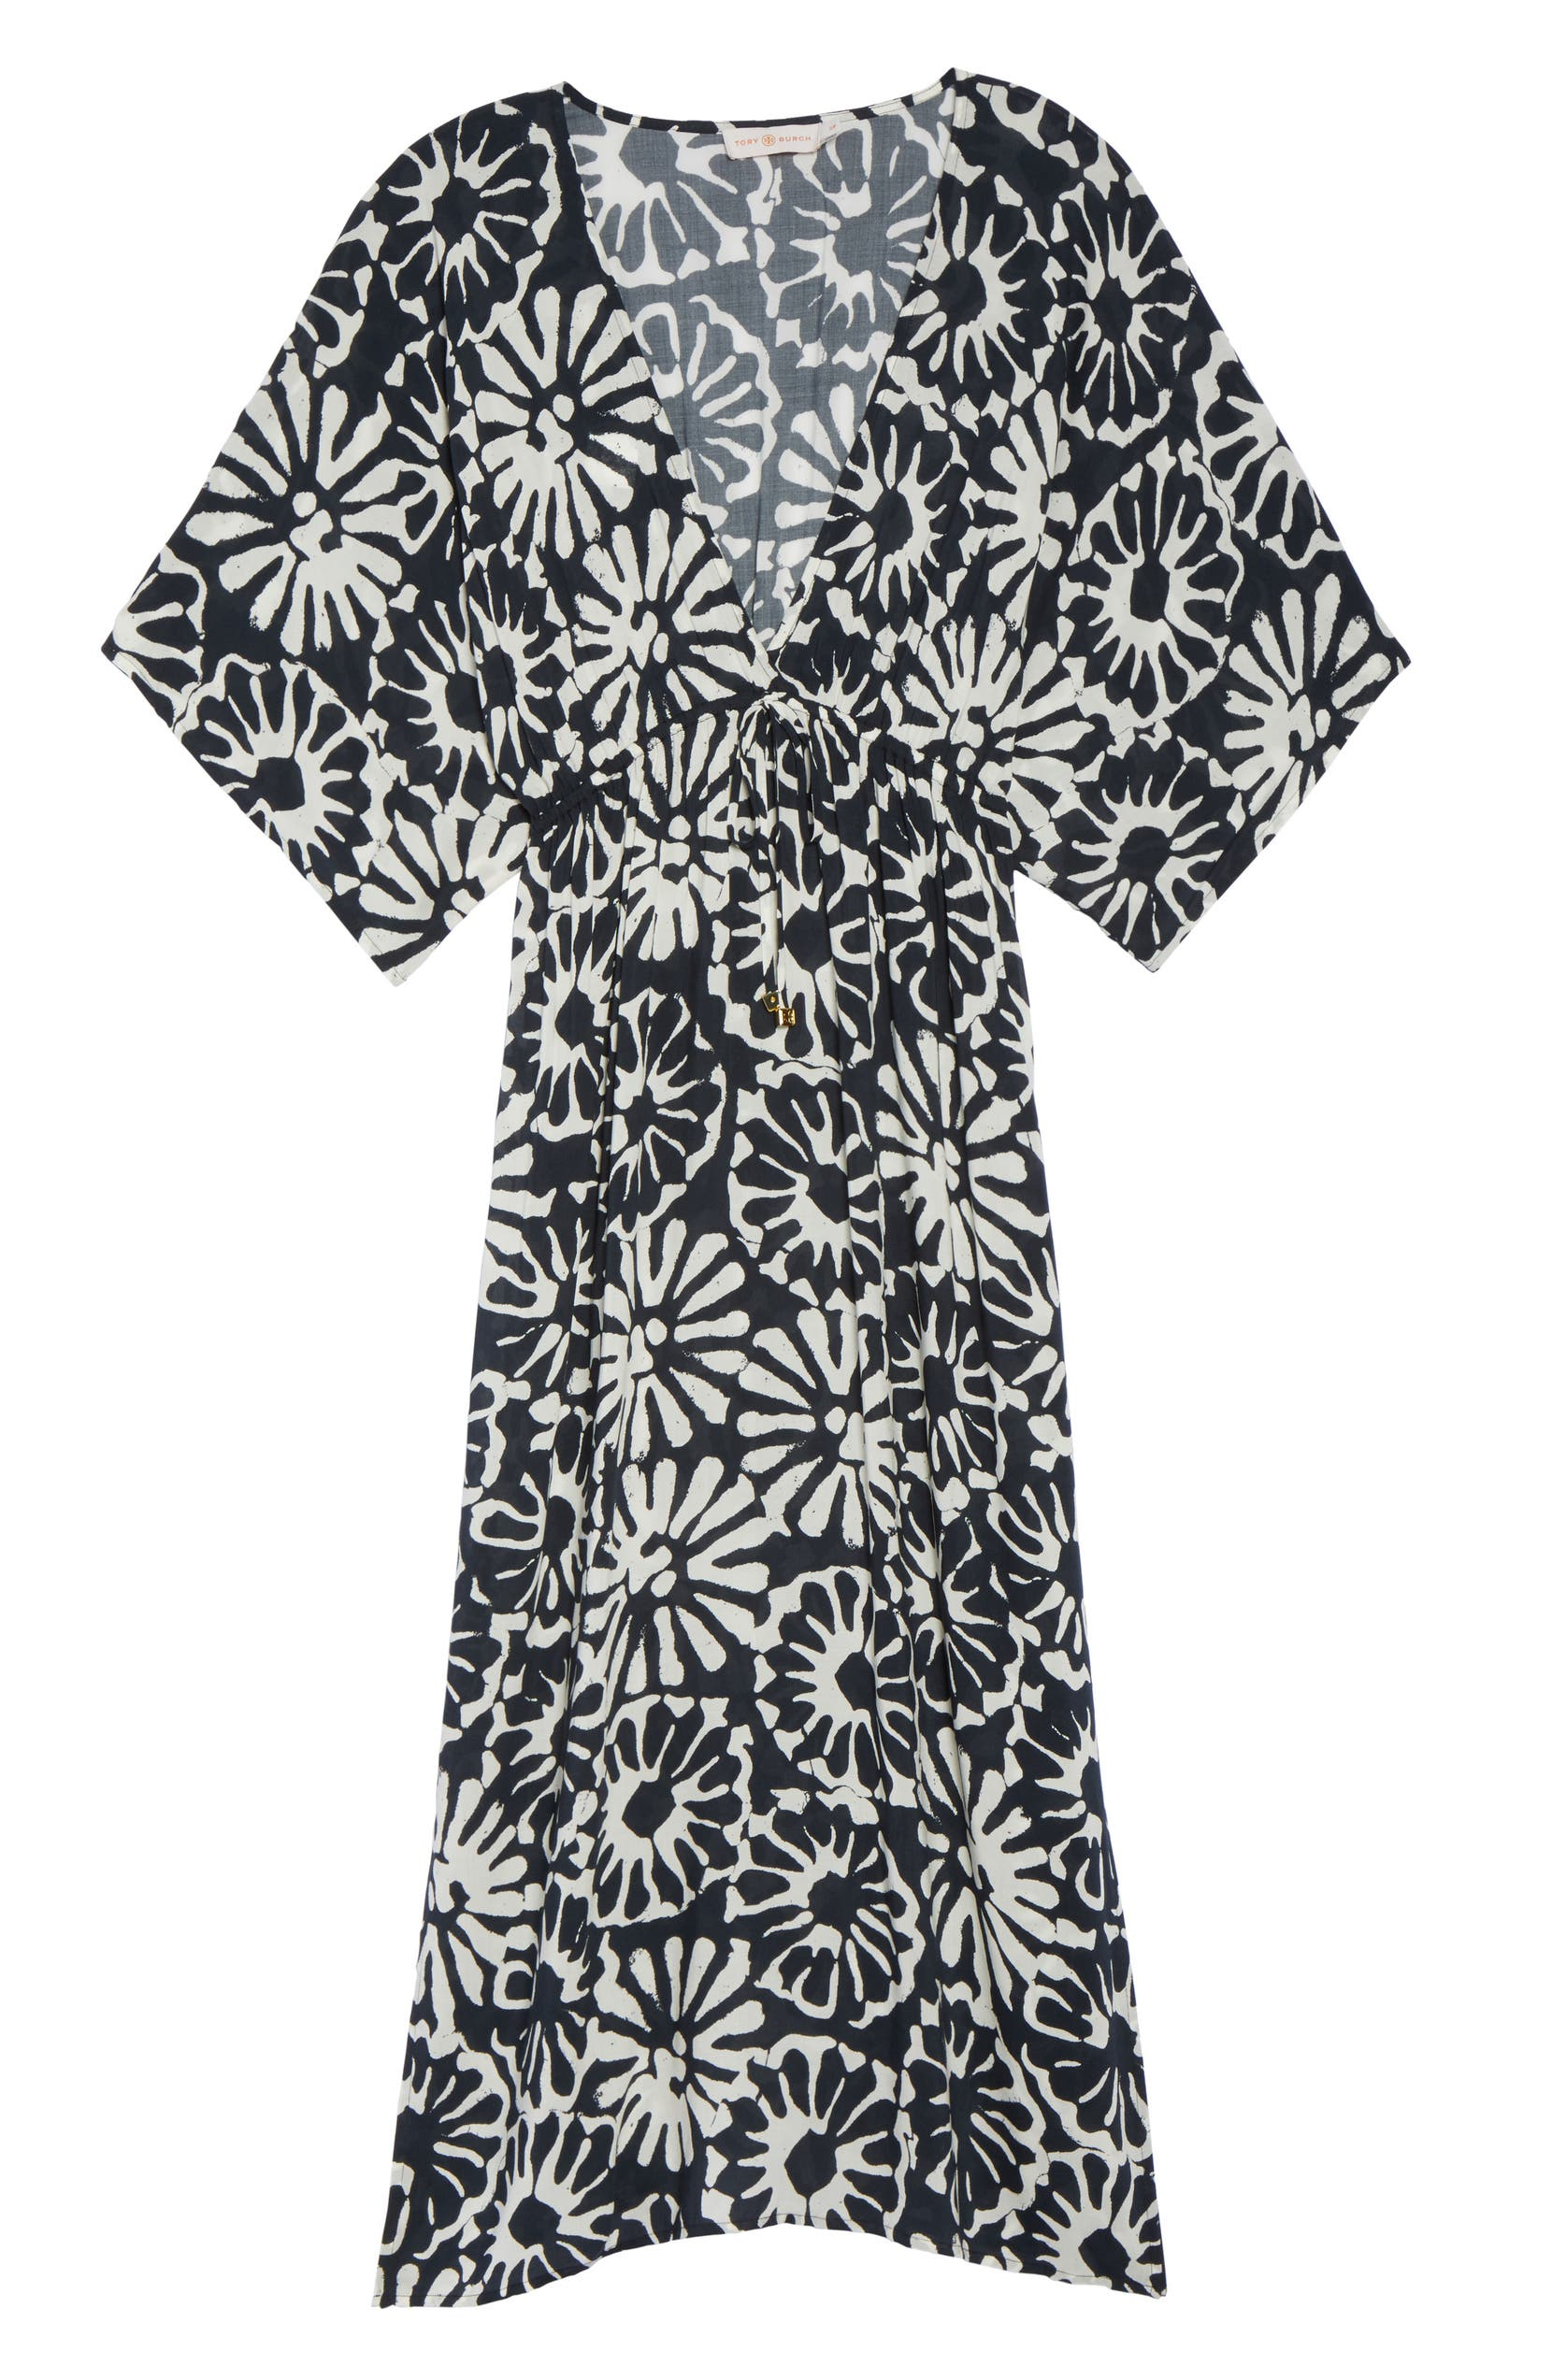 51c4991a3b5d9 Tory Burch Pomelo Floral Cover-Up Dress   Nordstrom